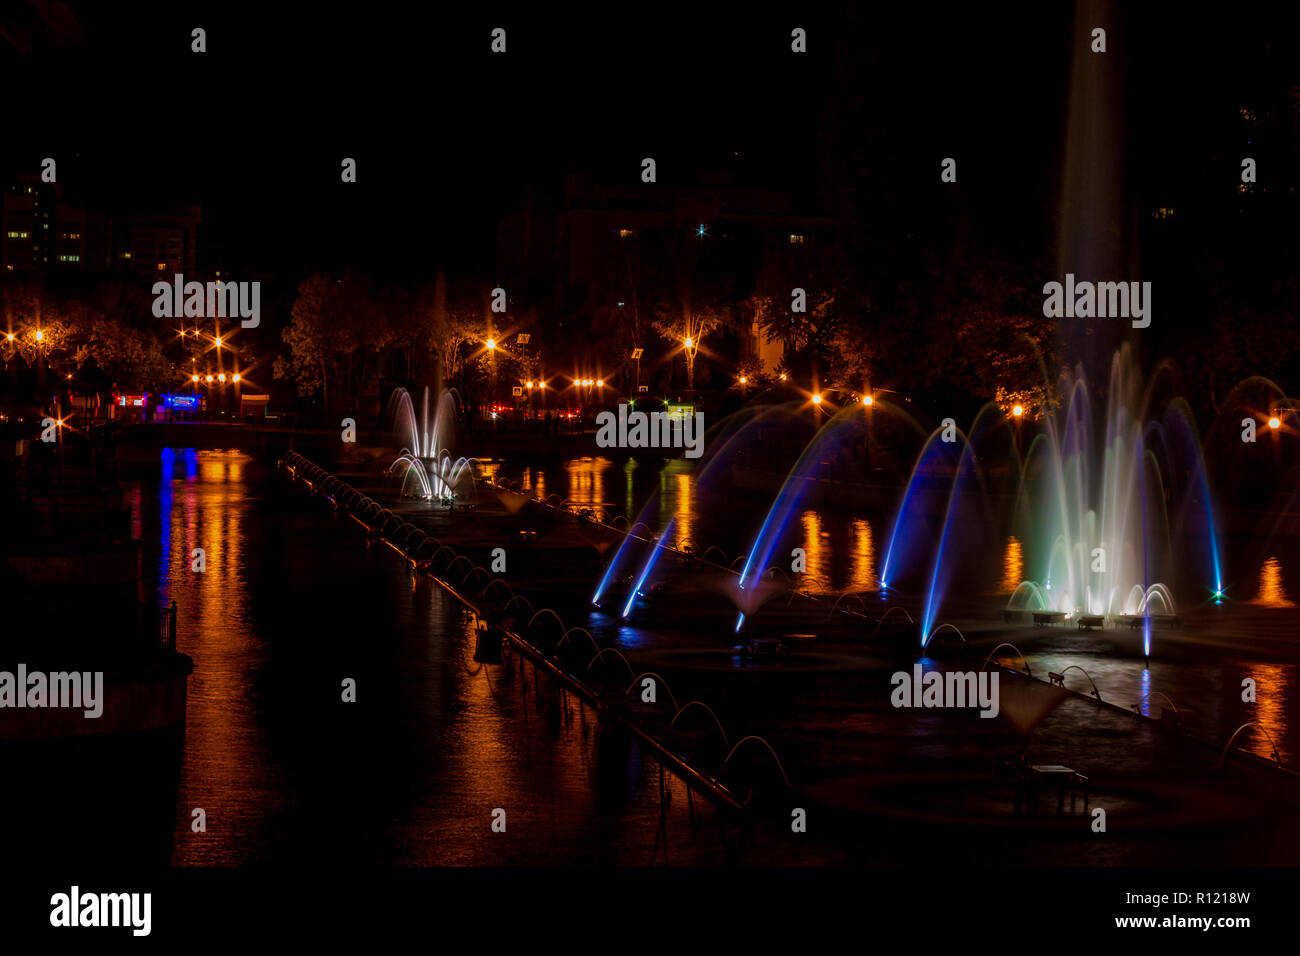 Glowing multicolored illumination fountains in the Far Eastern city of Khabarovsk. - Stock Image